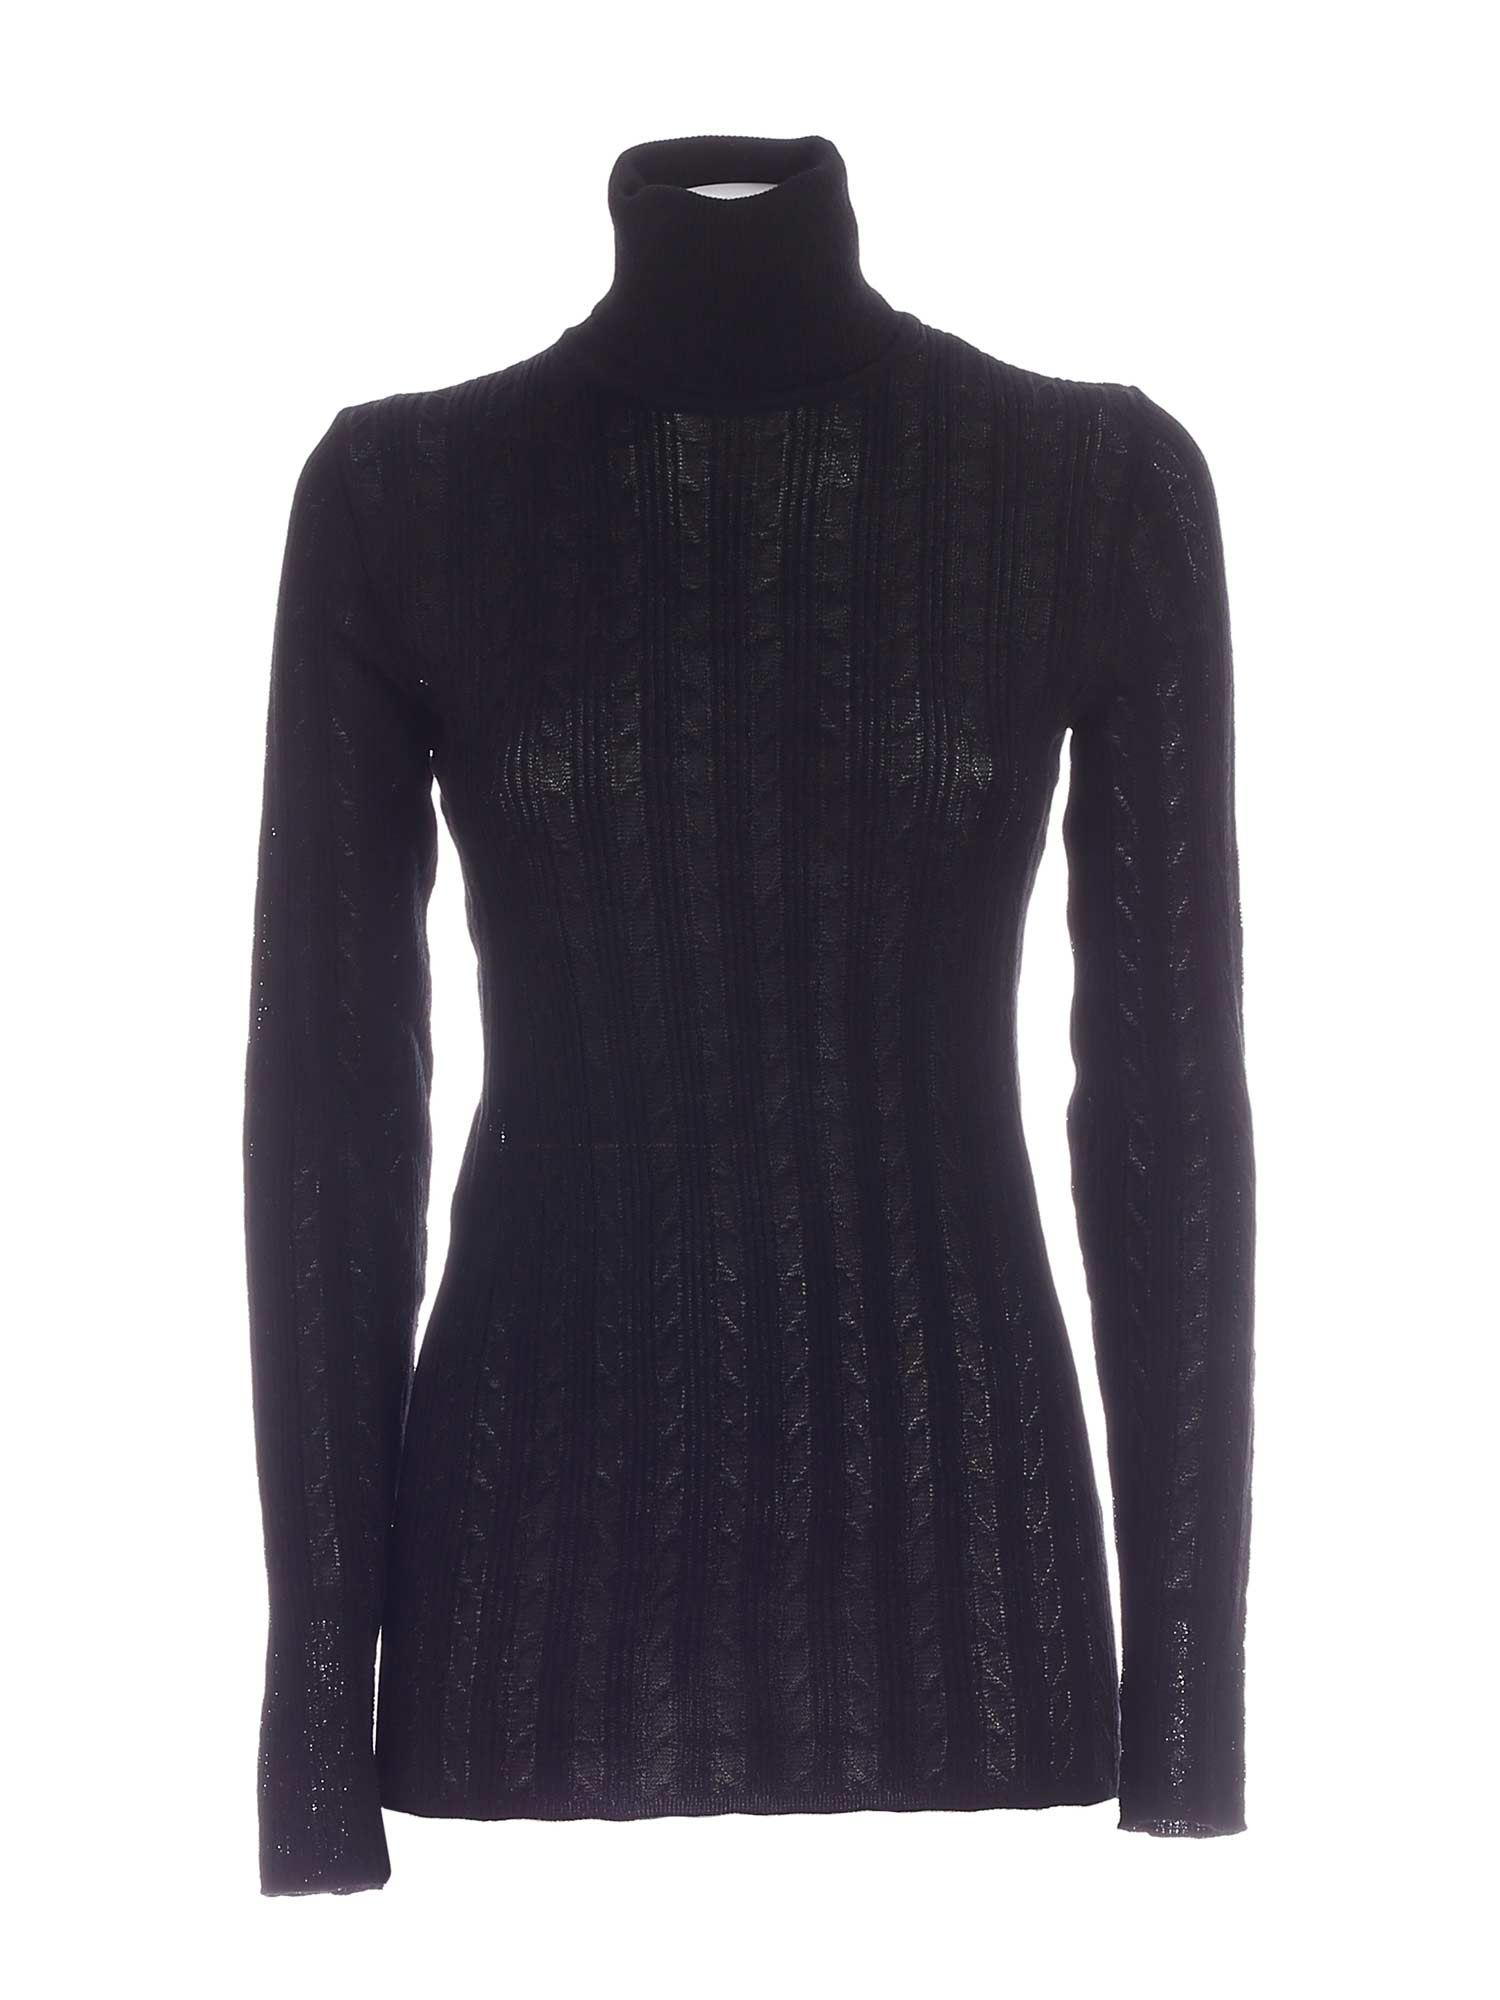 SEMI-TRANSPARENT TURTLENECK IN BLACK M MISSONI | 10000016 | 2DN002932K007893911